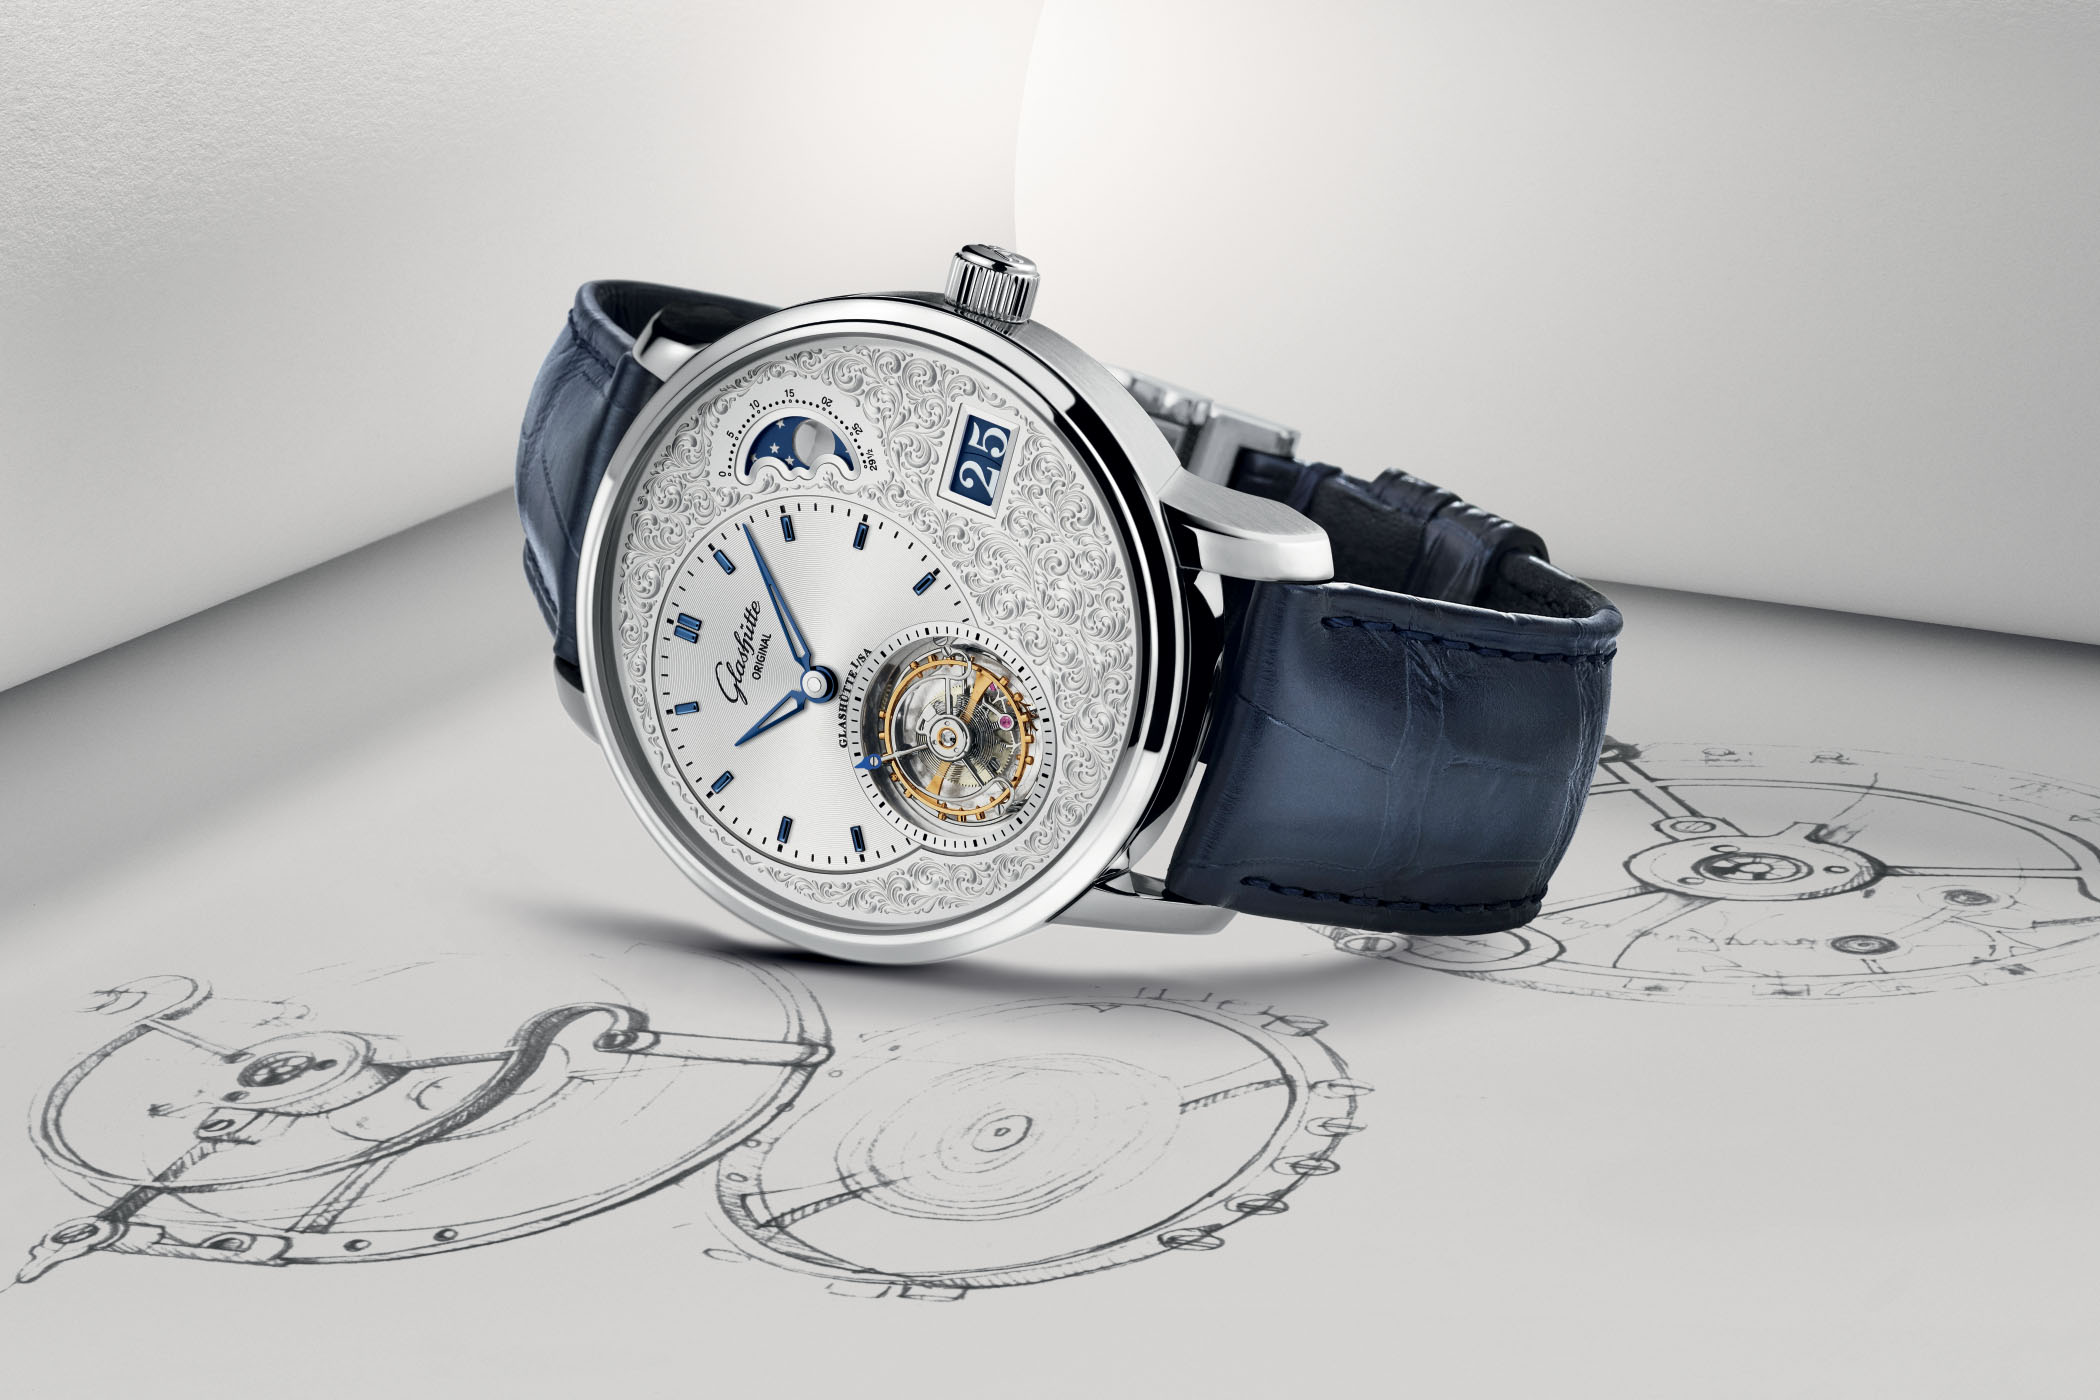 Glashutte Original PanoLunarTourbillon Limited Edition Engraved 2020